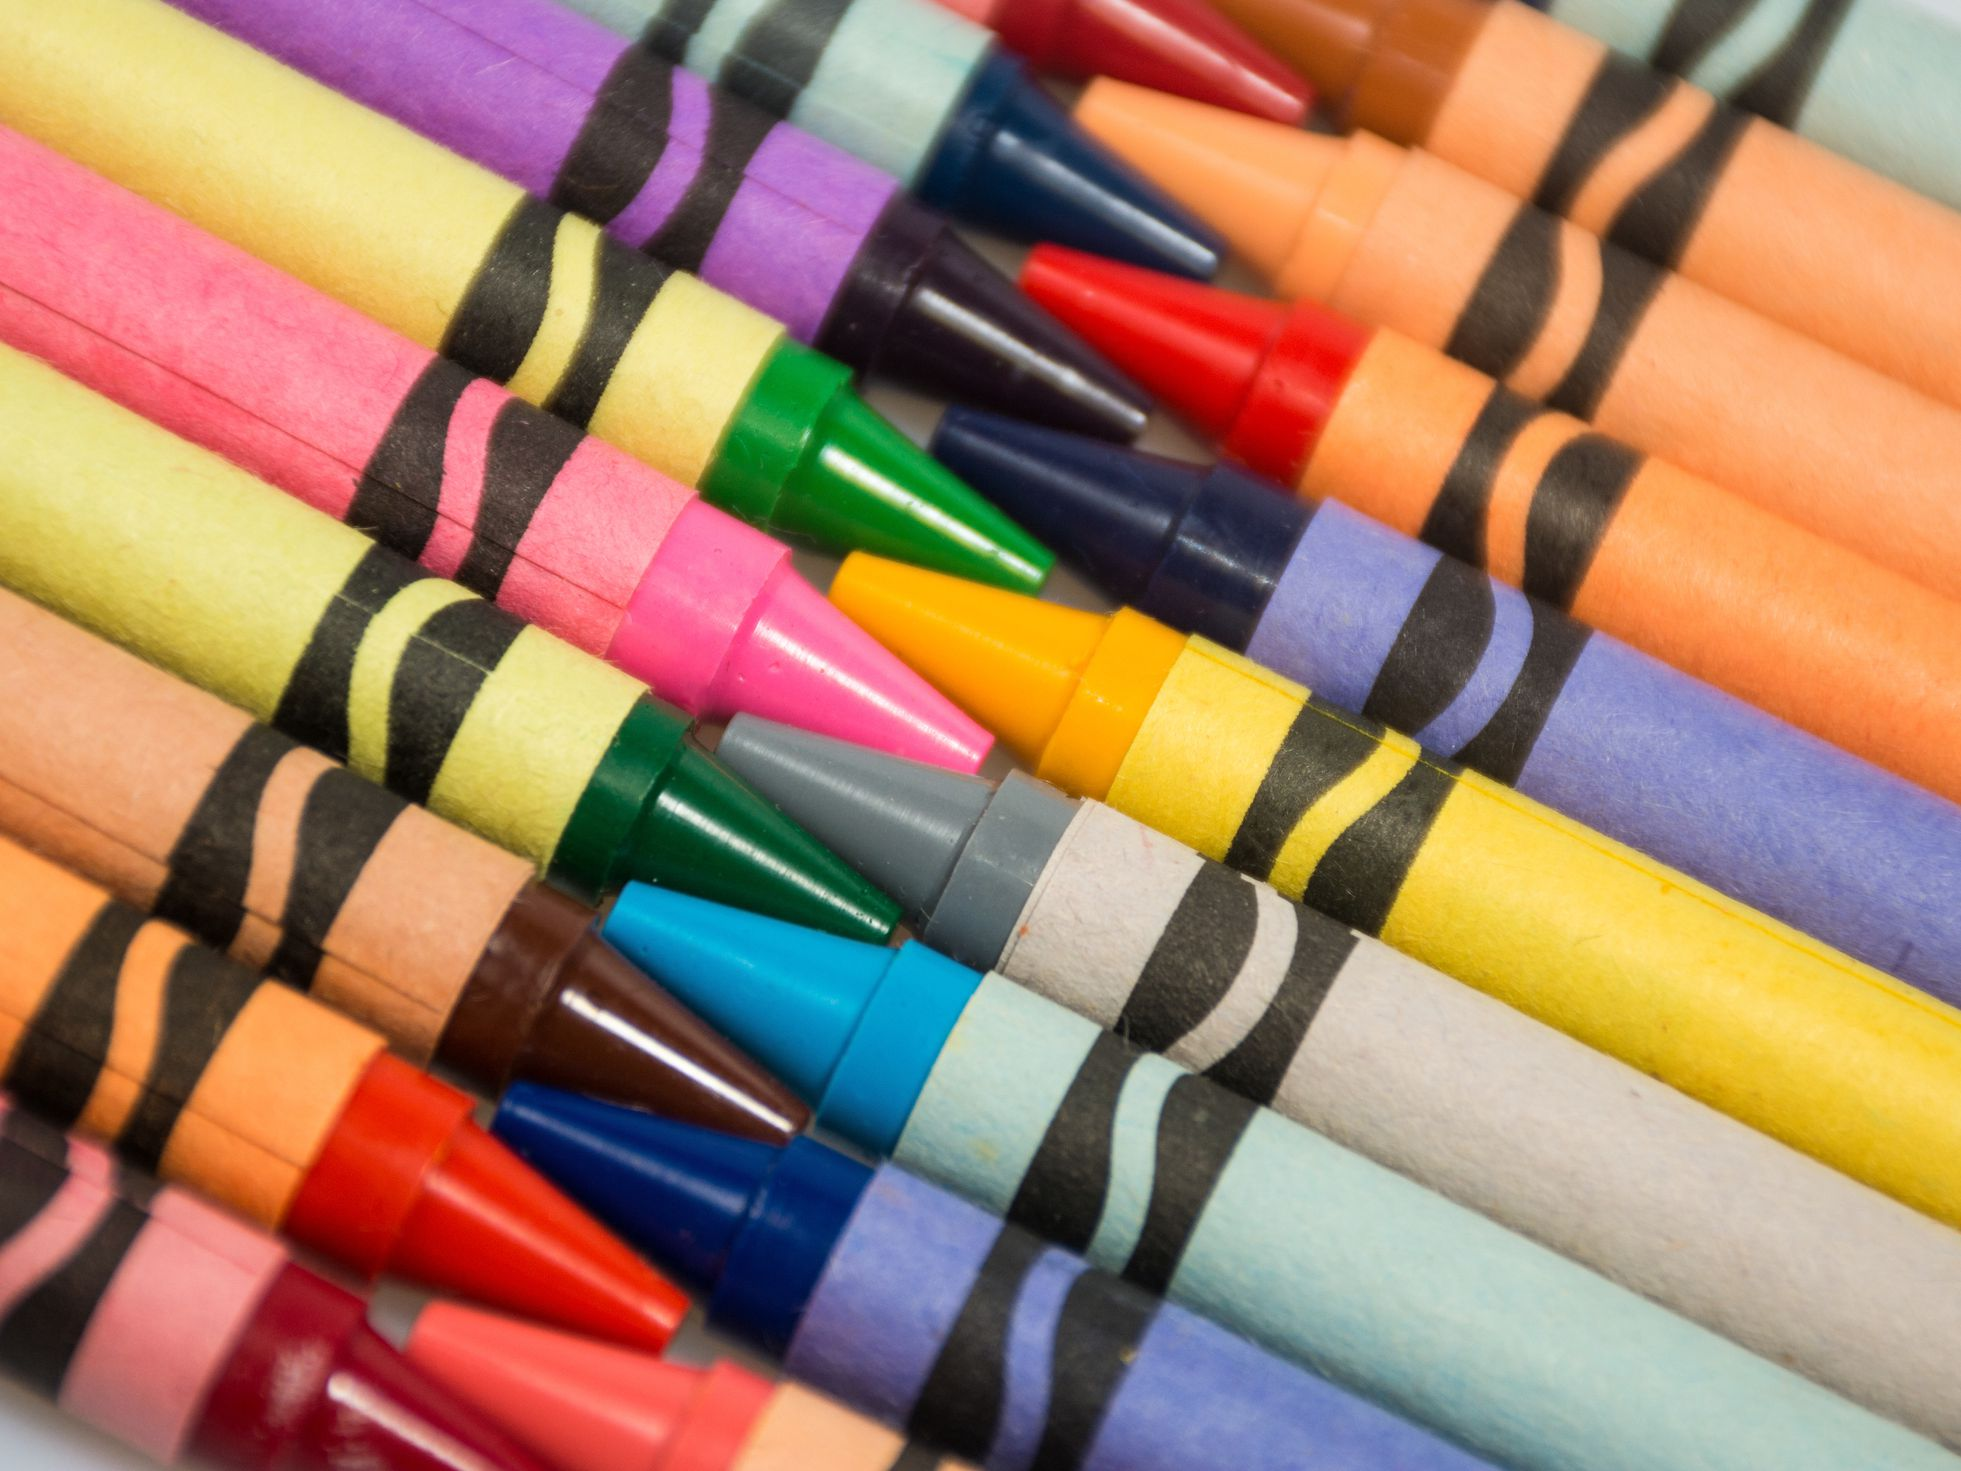 Enjoy National Crayon Day With Crafts For Kids And Adults